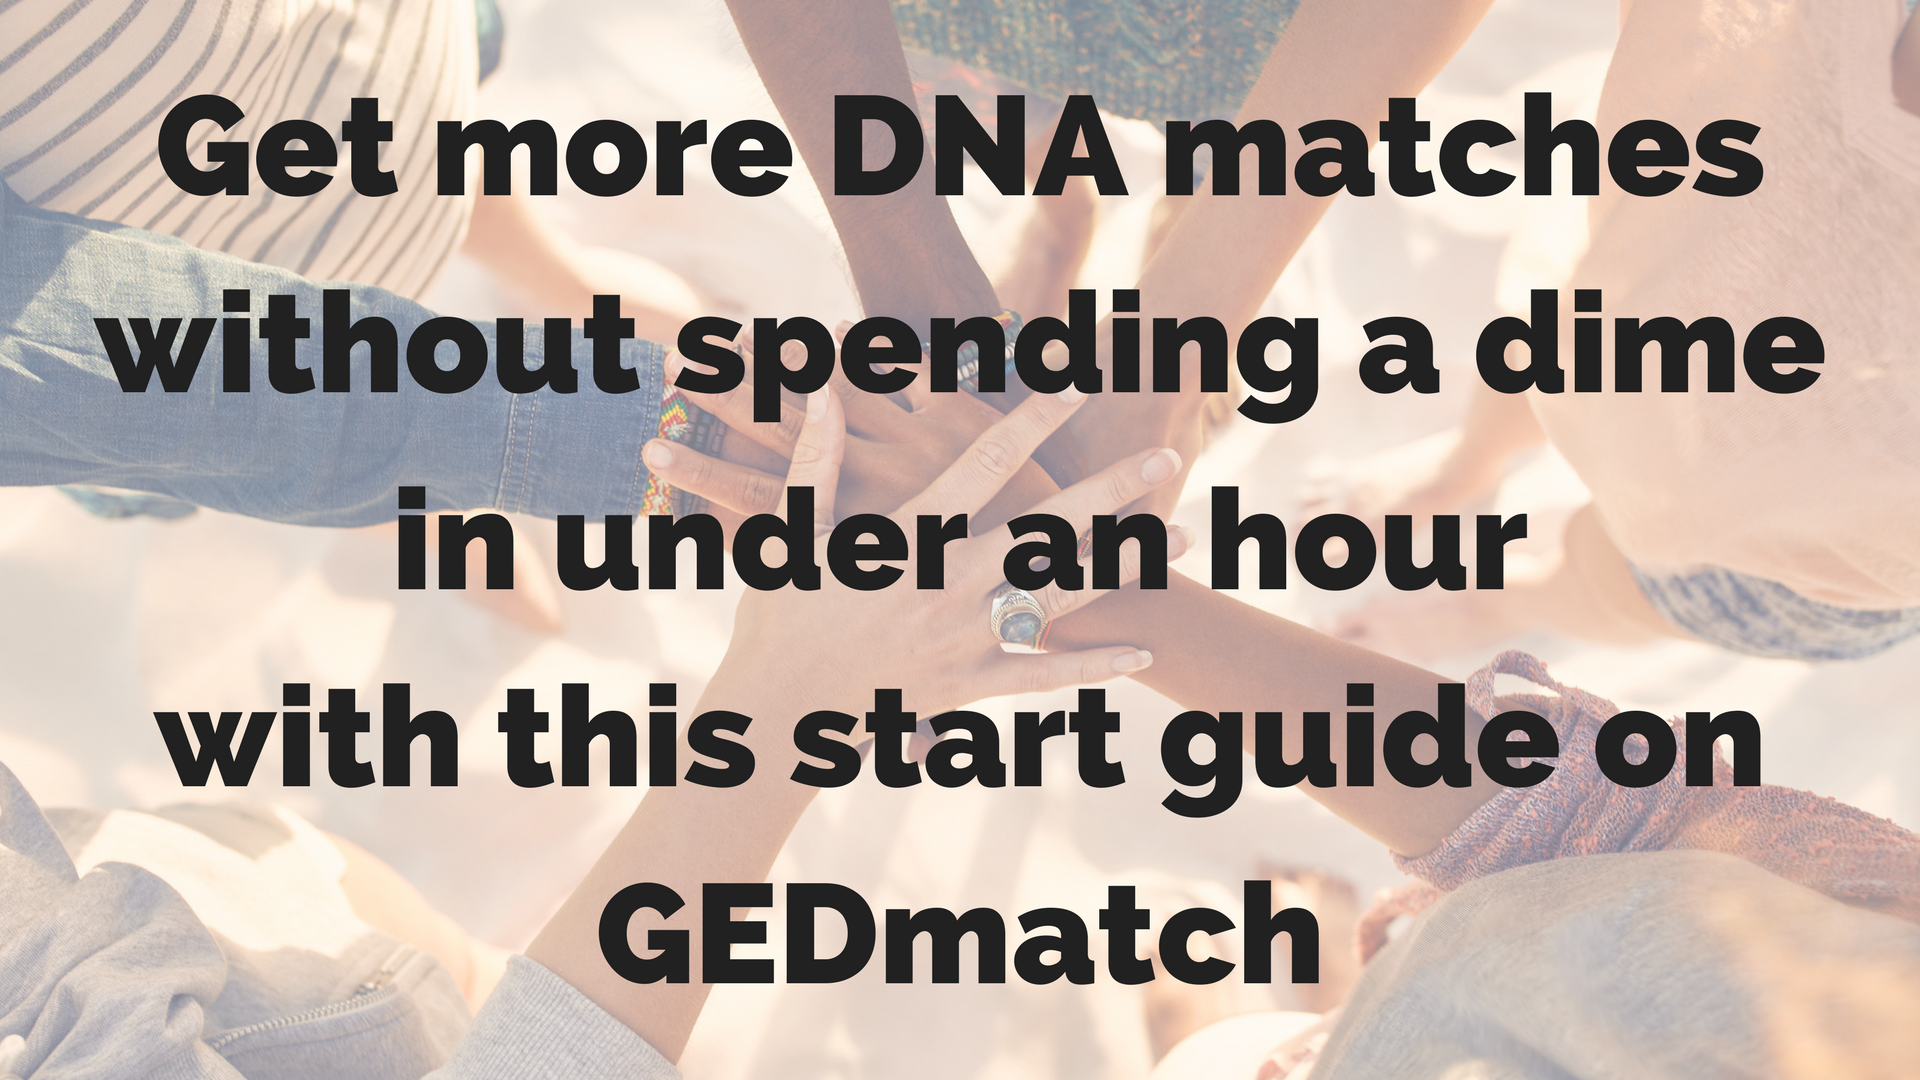 GEDmatch: start guide to more DNA matches without spending a dime in